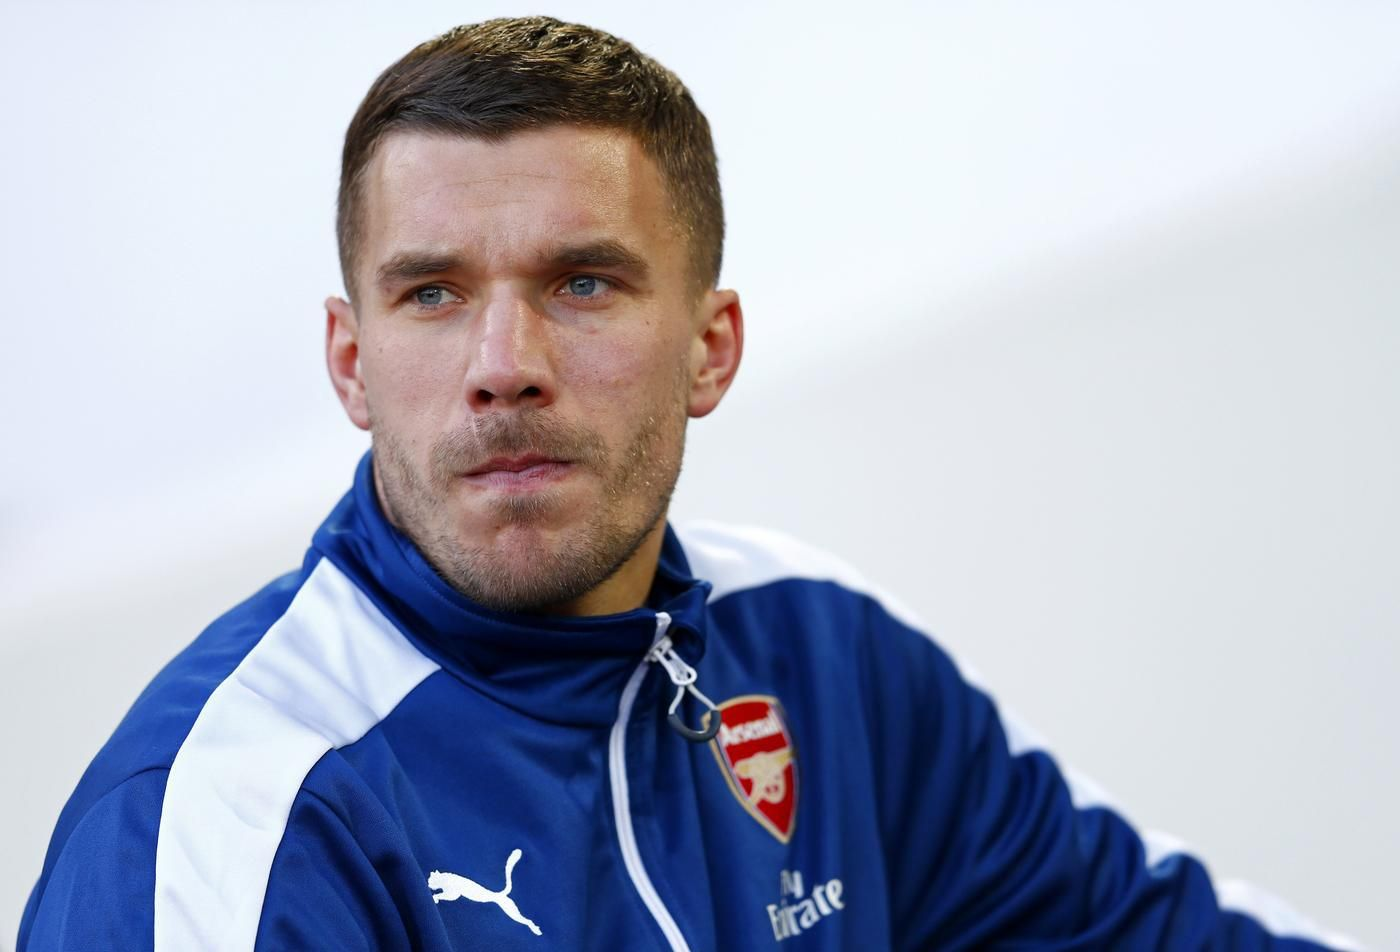 Does this mean Arsenal will sell Lukas Podolski and David Ospina in the transfer window?